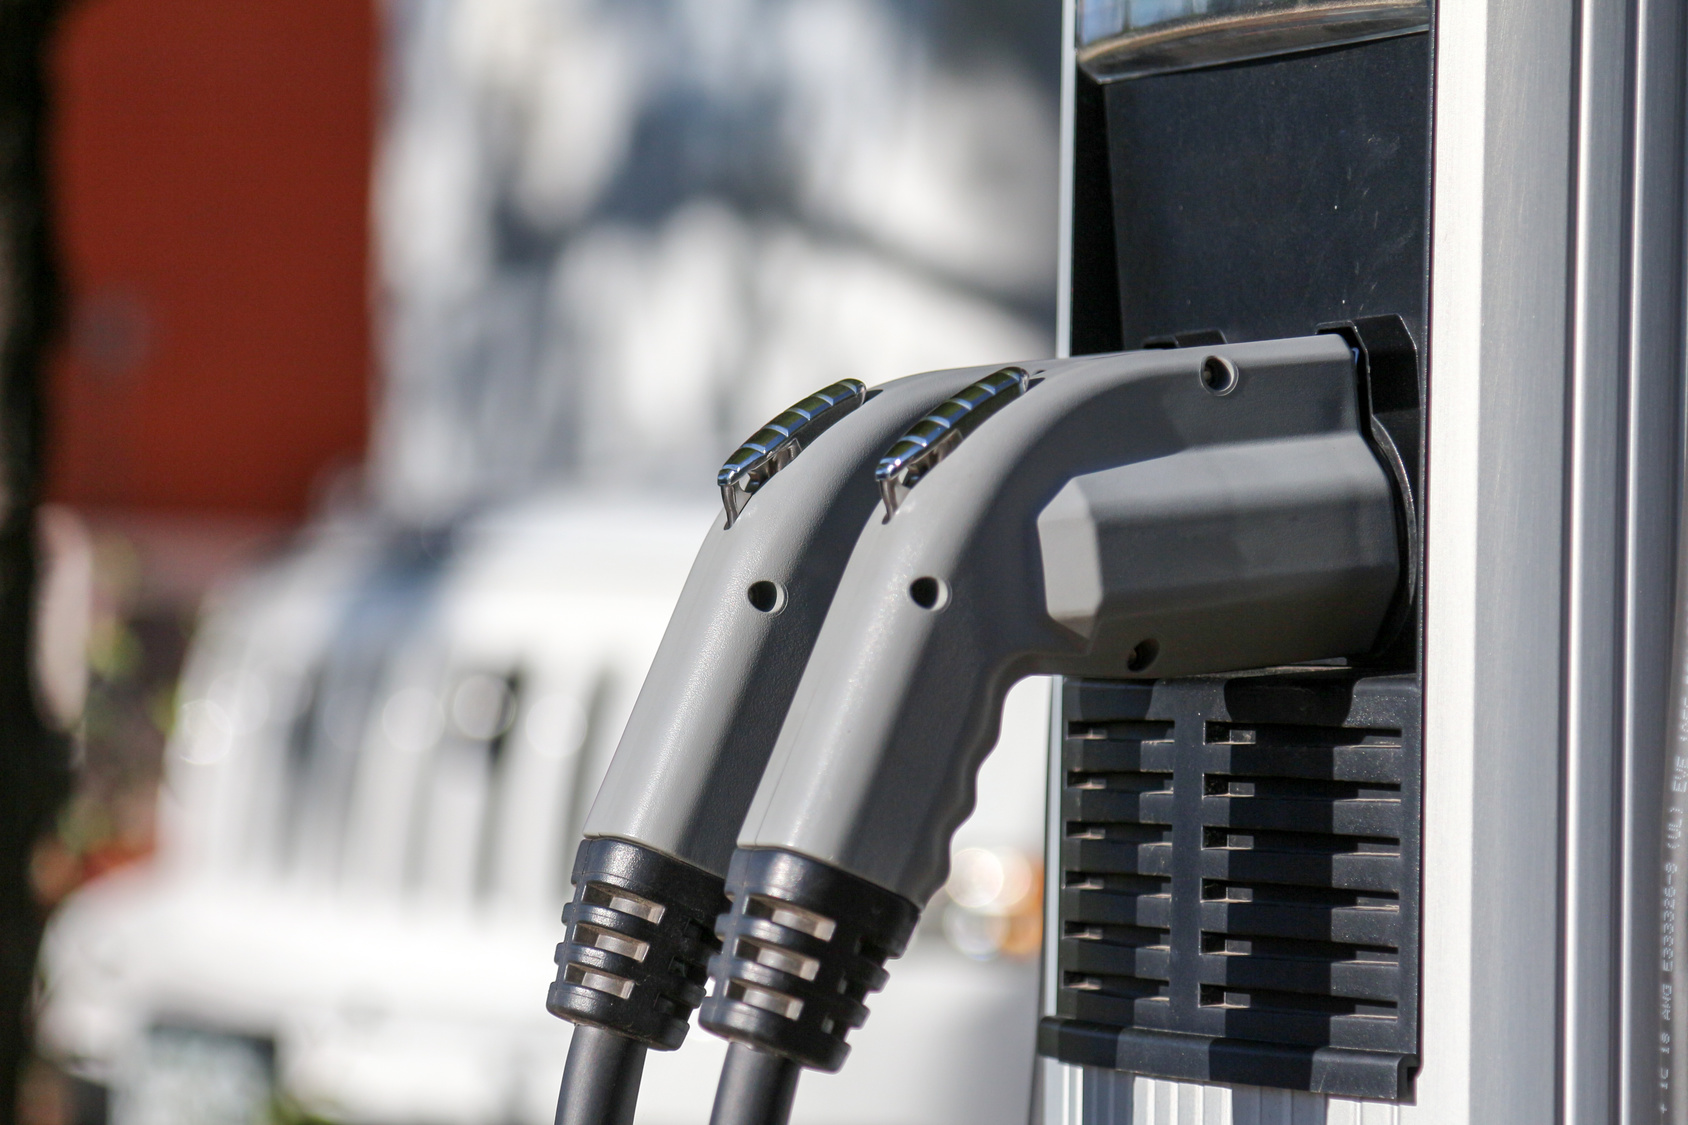 A pair of grey electric car chargers rest comfortably on the charging stations